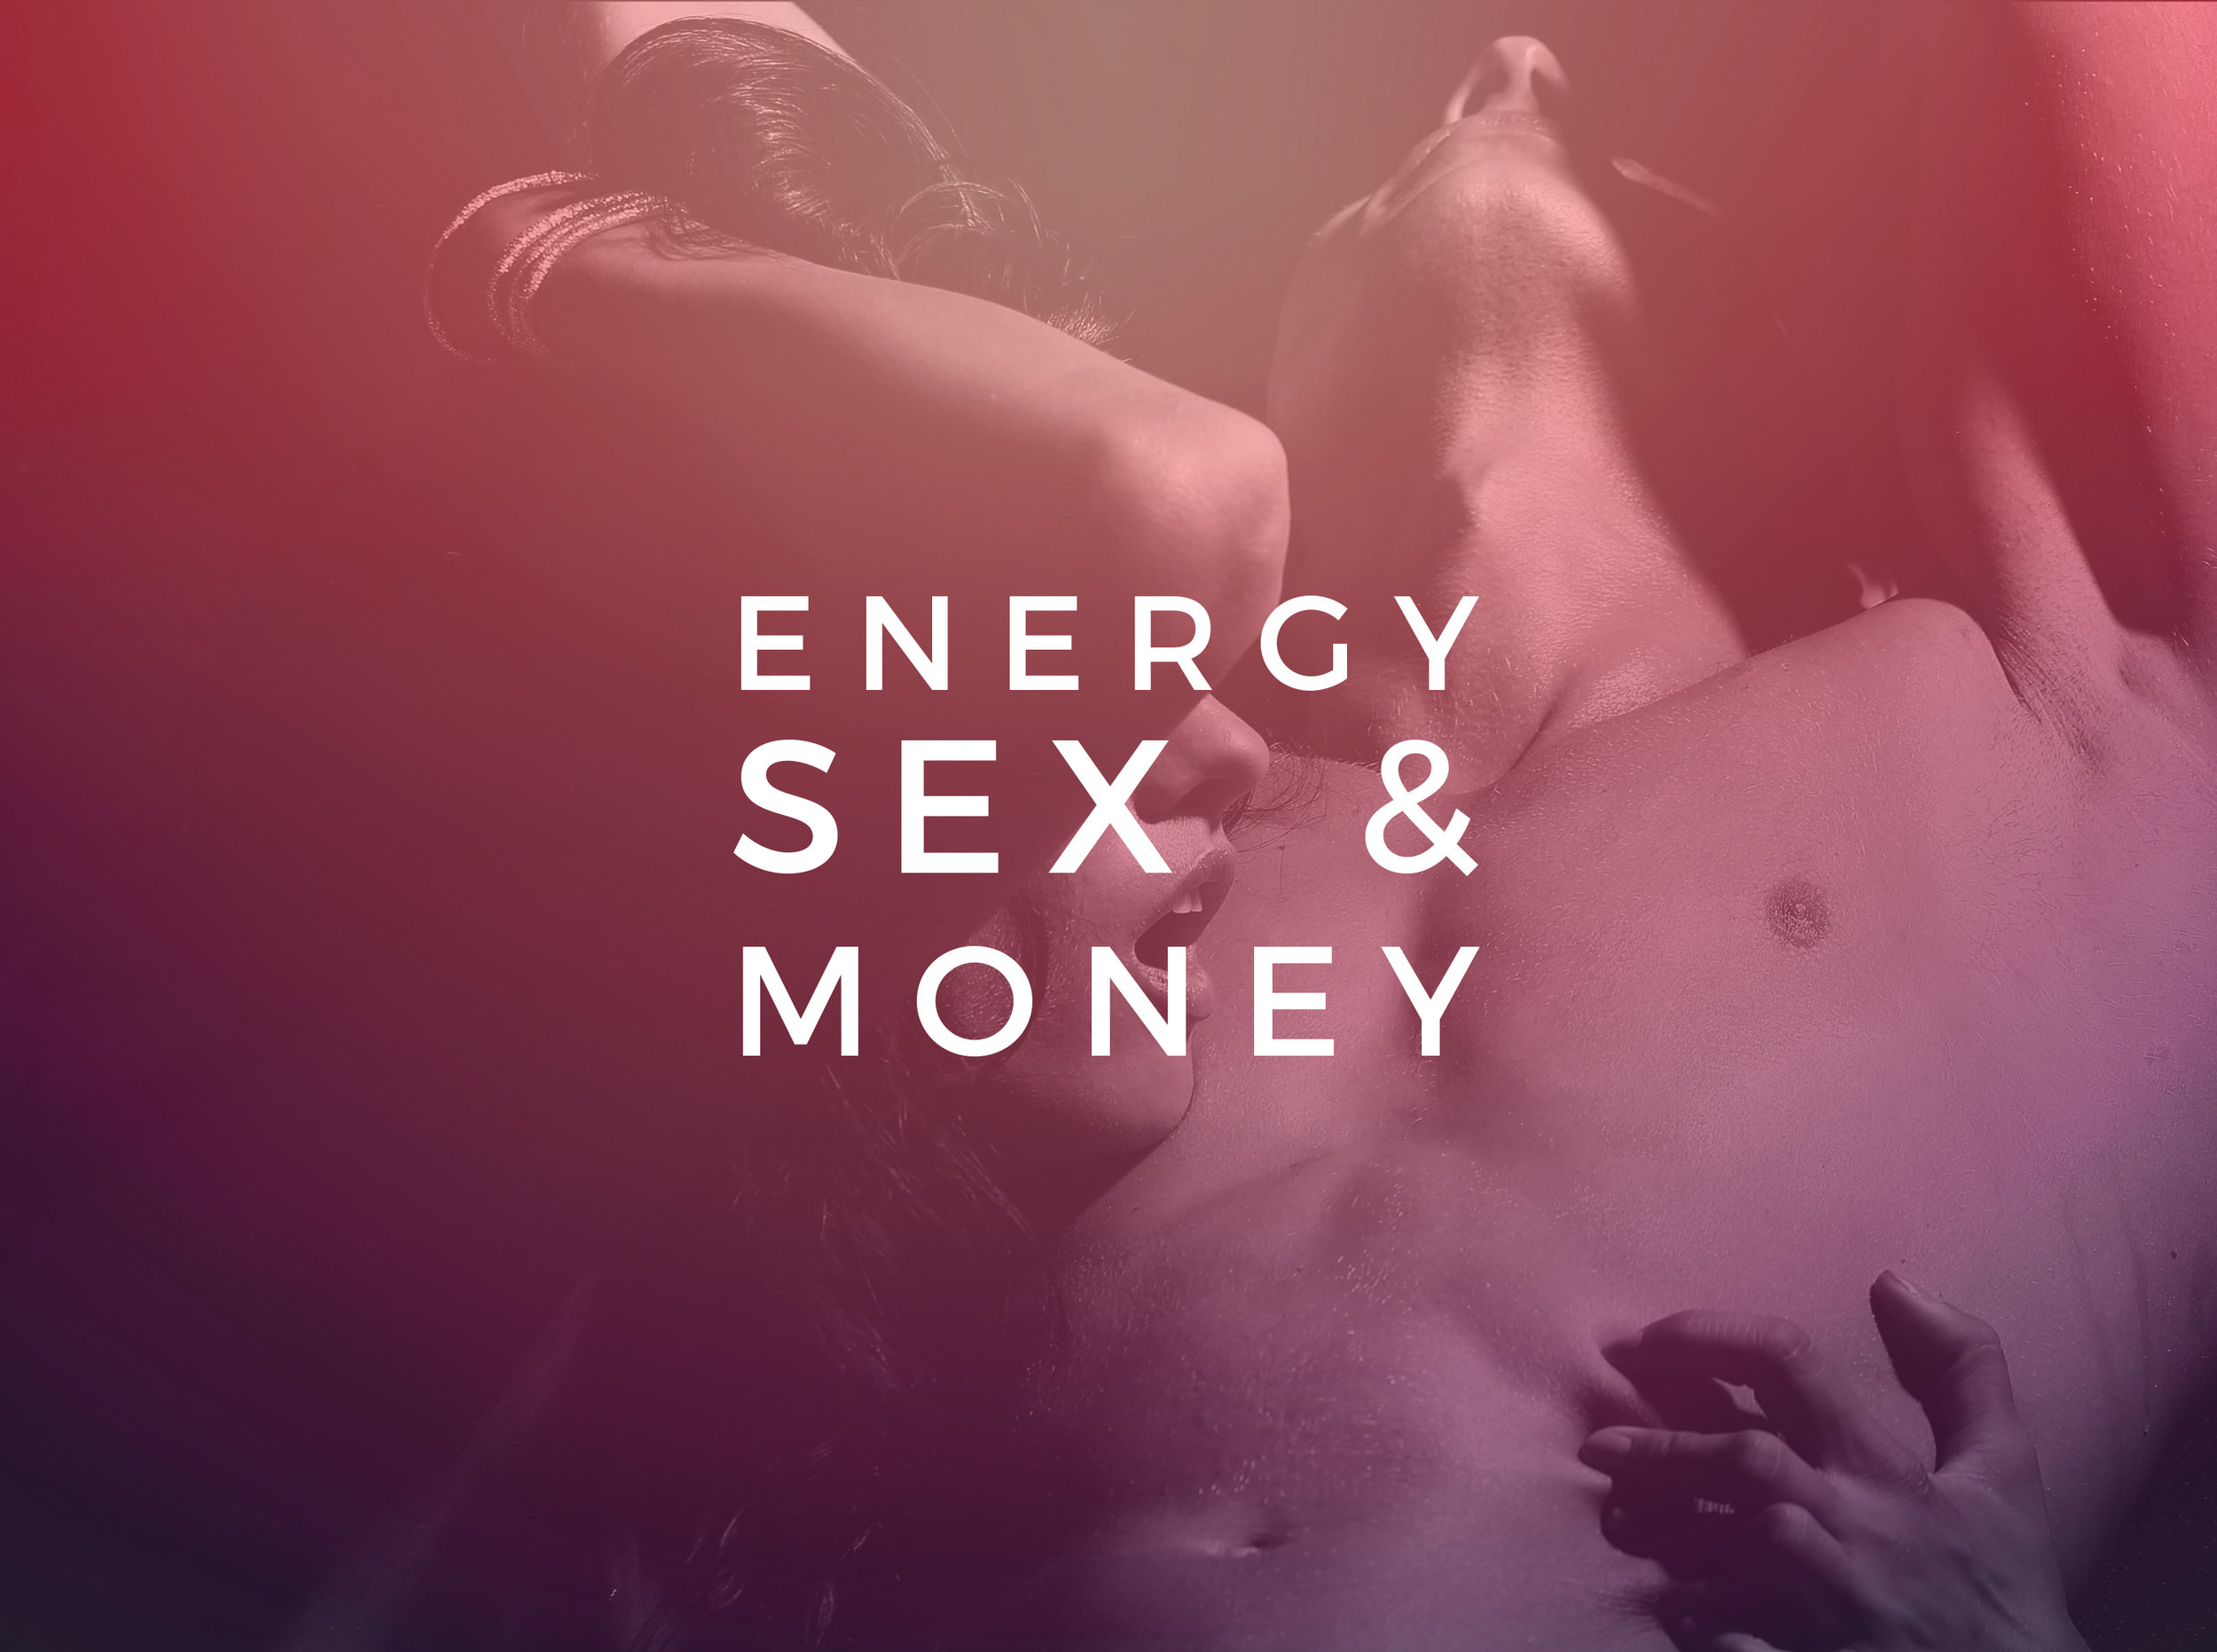 ENERGY SEX AND MONEY JUST LOGO.jpg